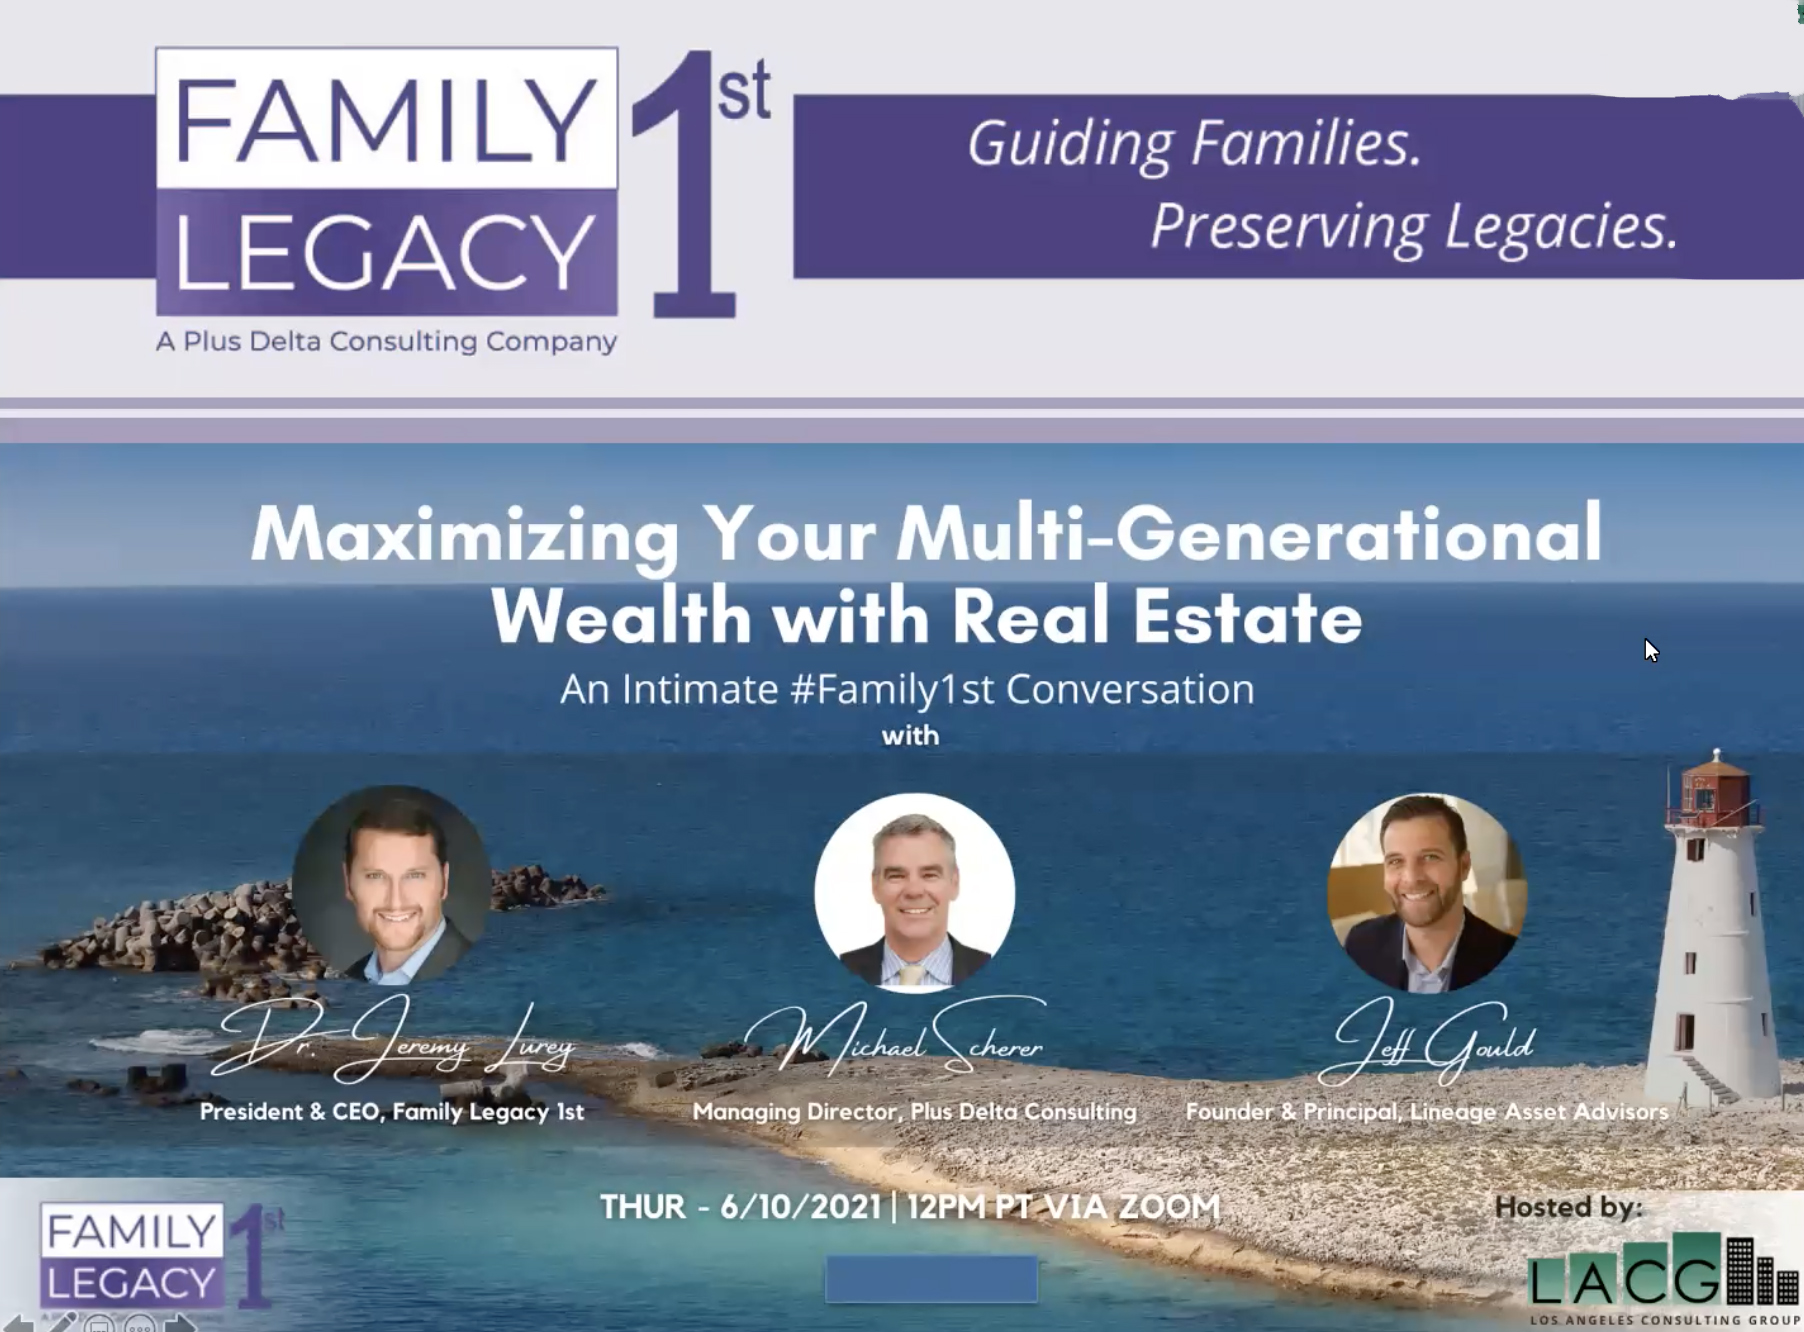 Maximizing Your Multi-Generational Wealth with Real Estate Online Seminar [Family Legacy 1st]